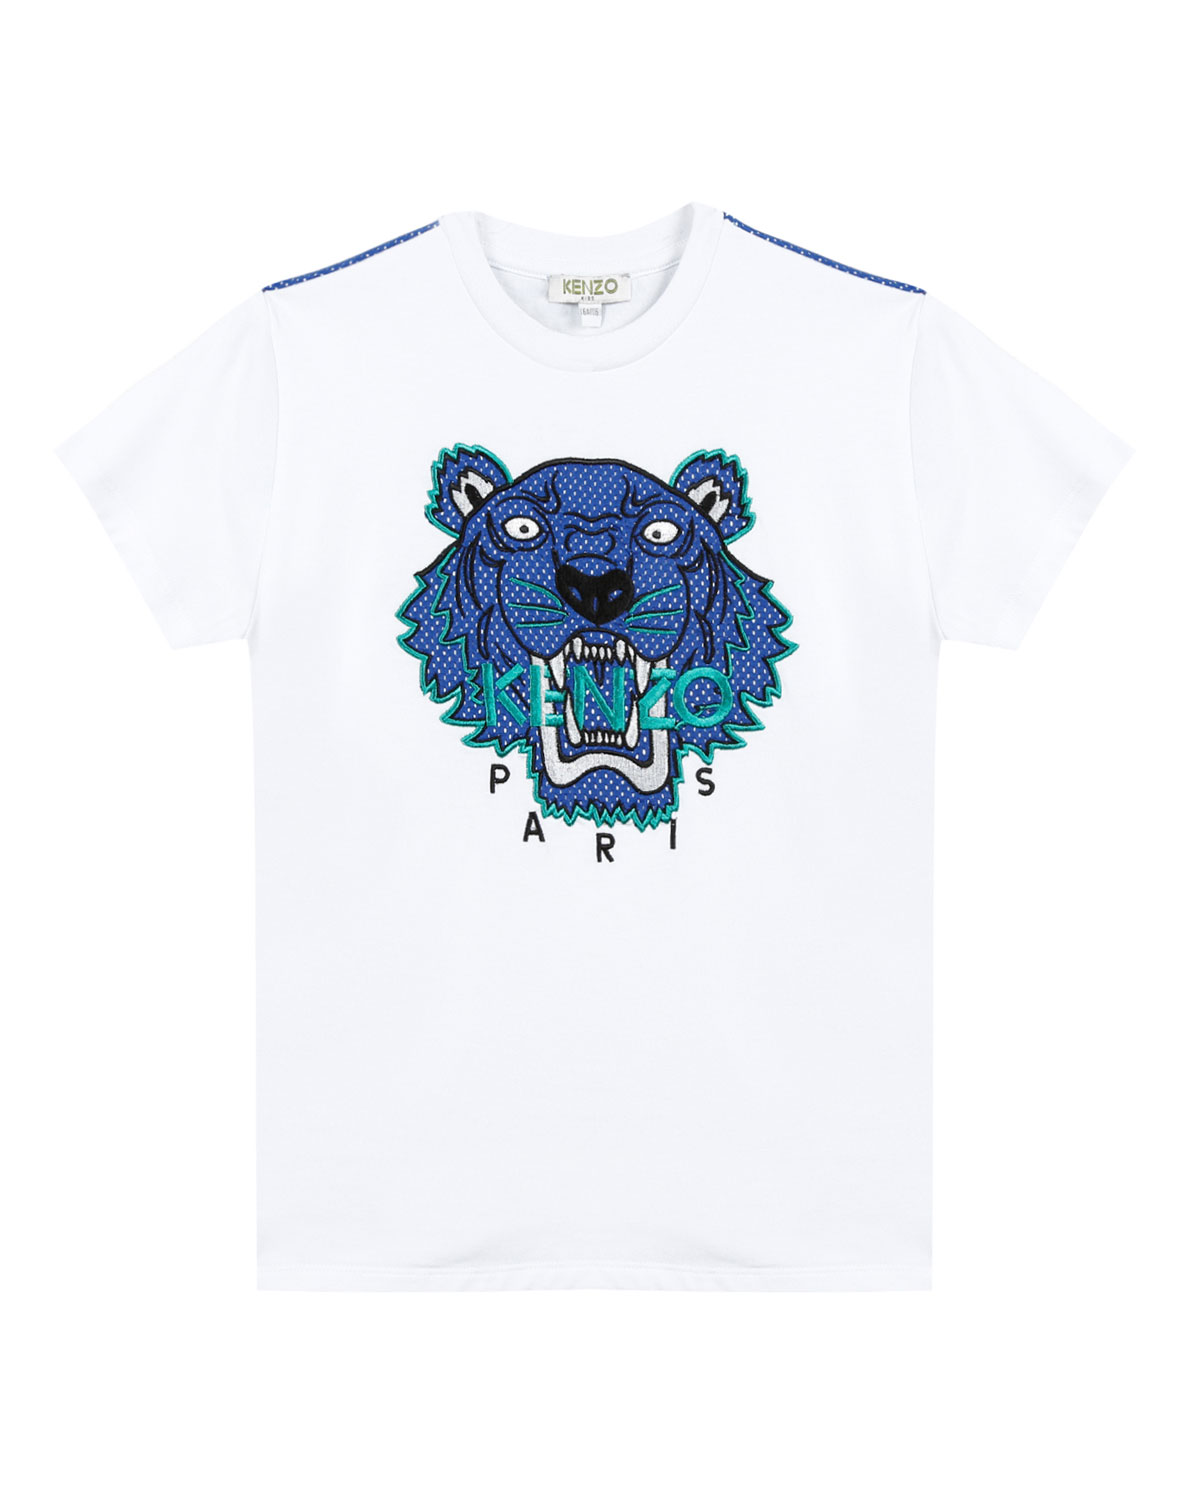 831a0032 Kenzo Mixed Material Tiger Embroidered T-Shirt, Size 5-6 | Neiman Marcus